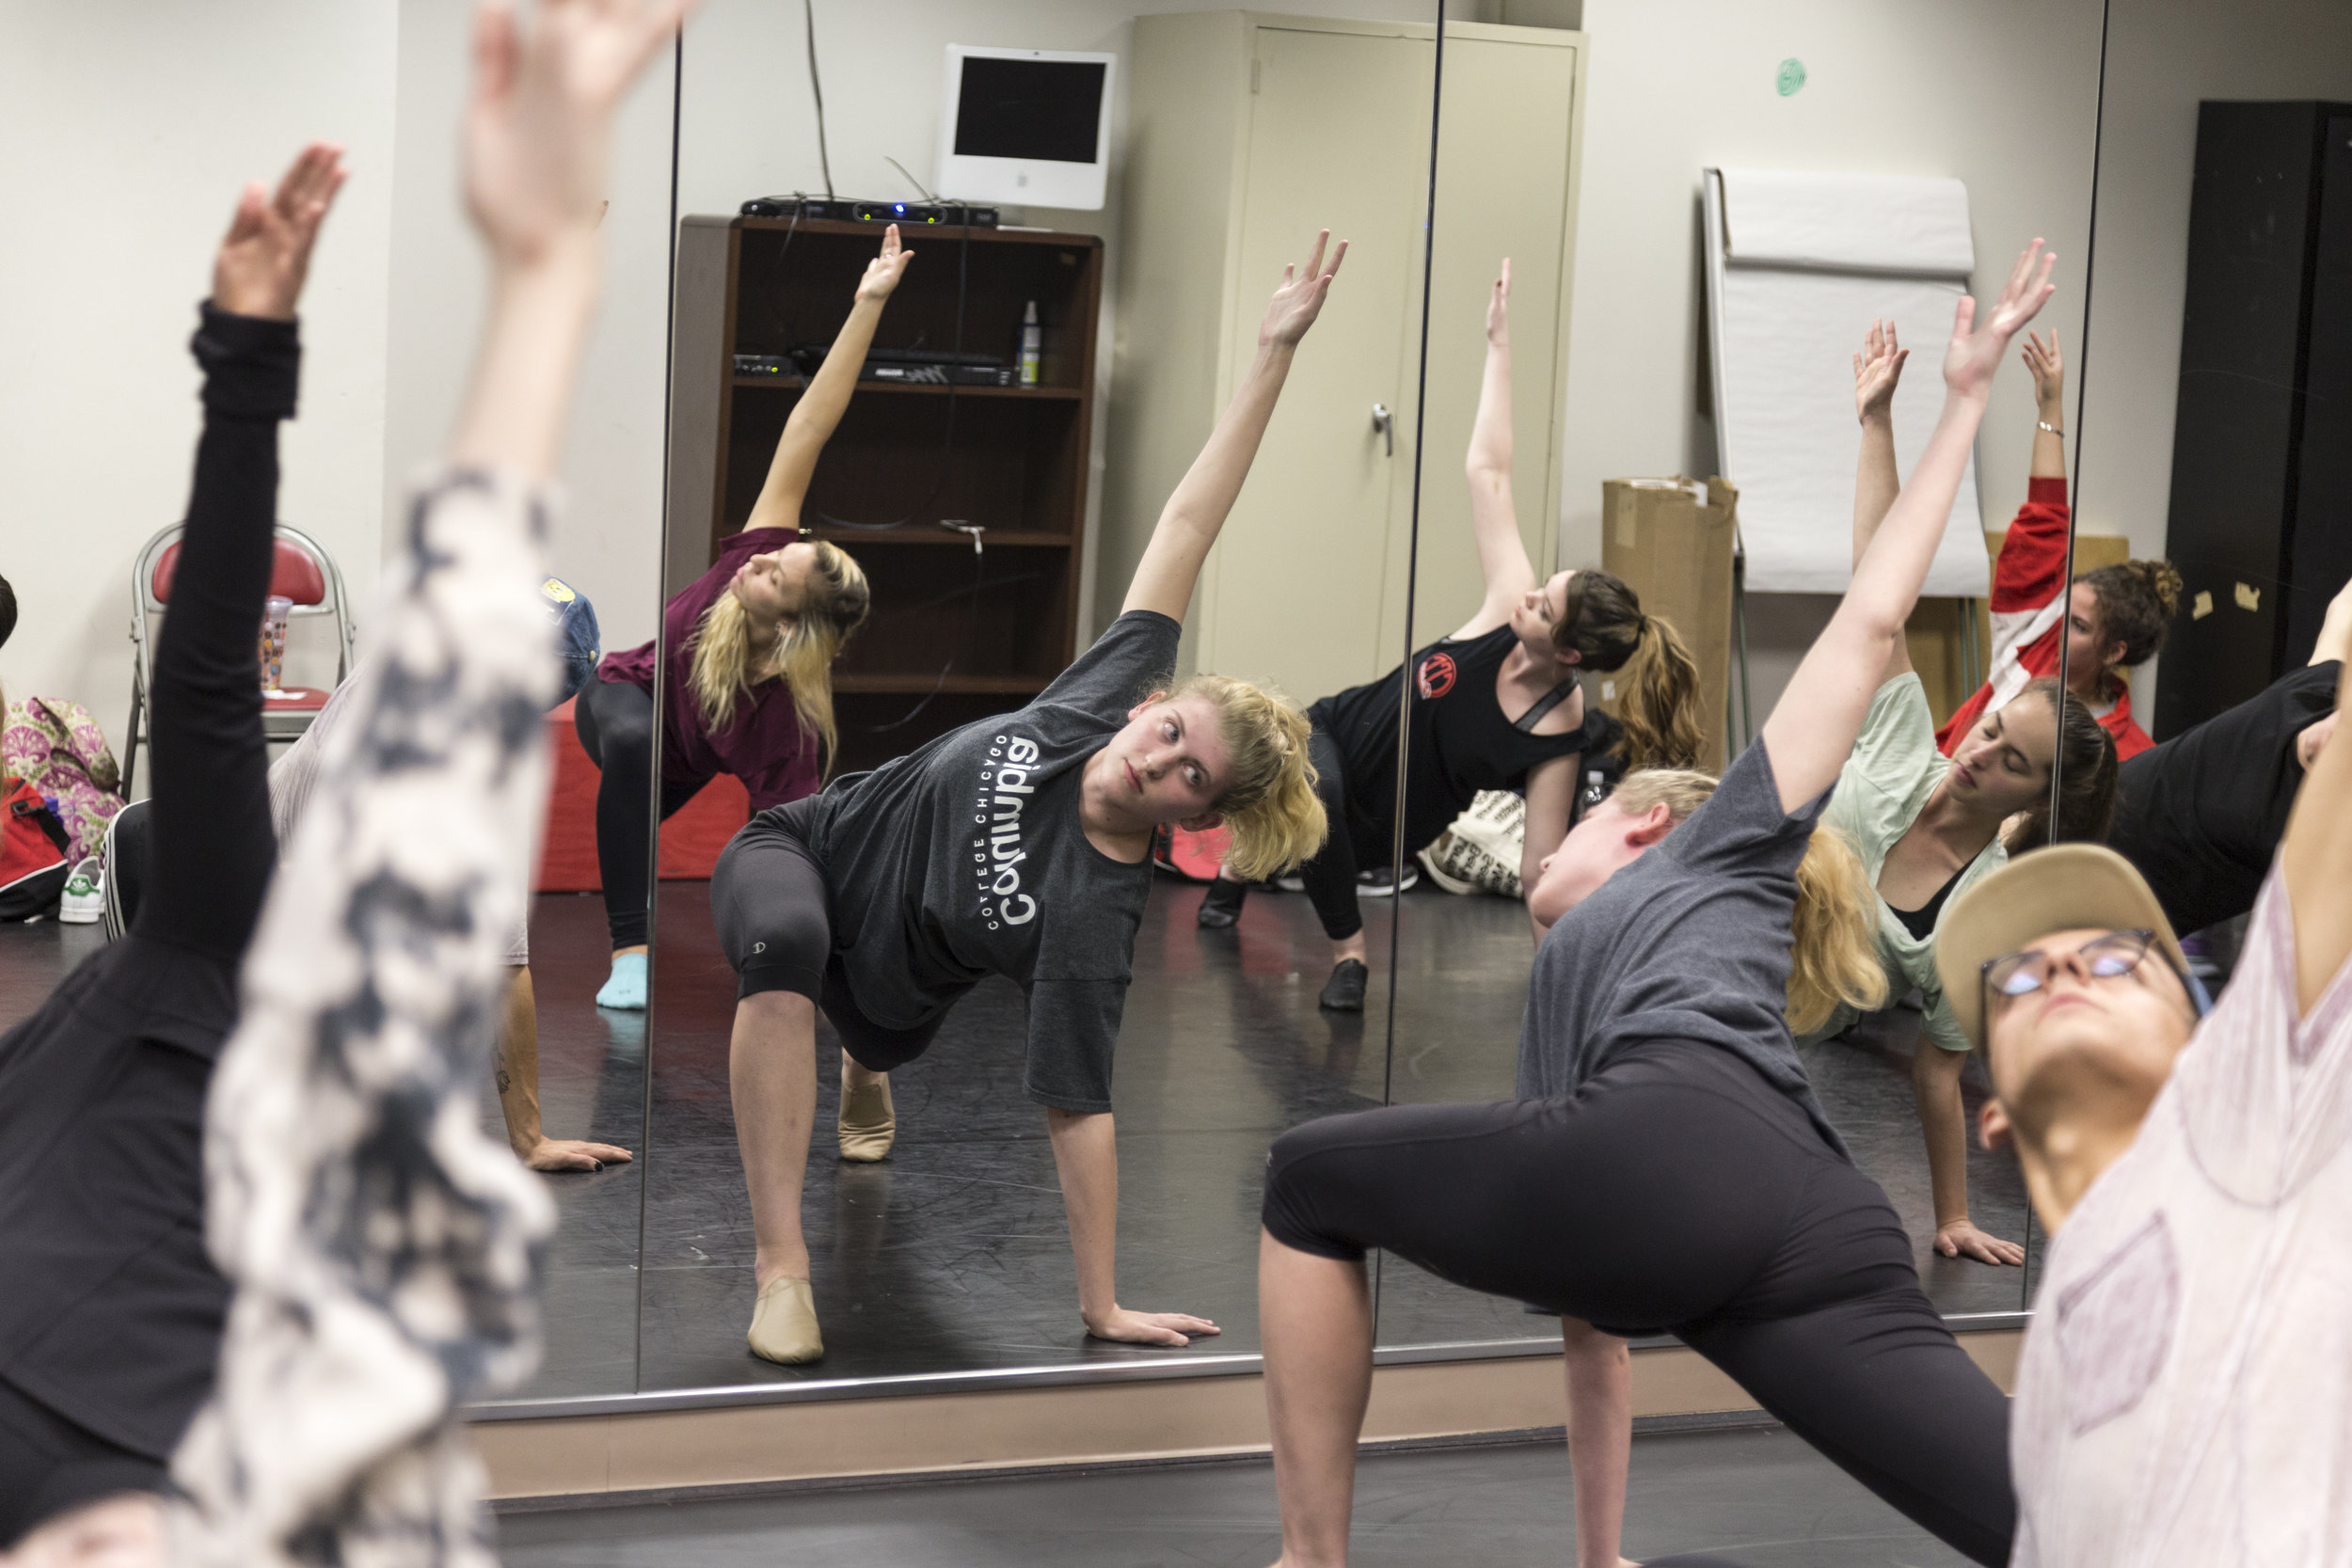 Miranda Kanowsky leads the Columbia College Dance Team in stretches at their rehearsal on Wednesday, Oct. 4. 1306 S. Michigan Ave.